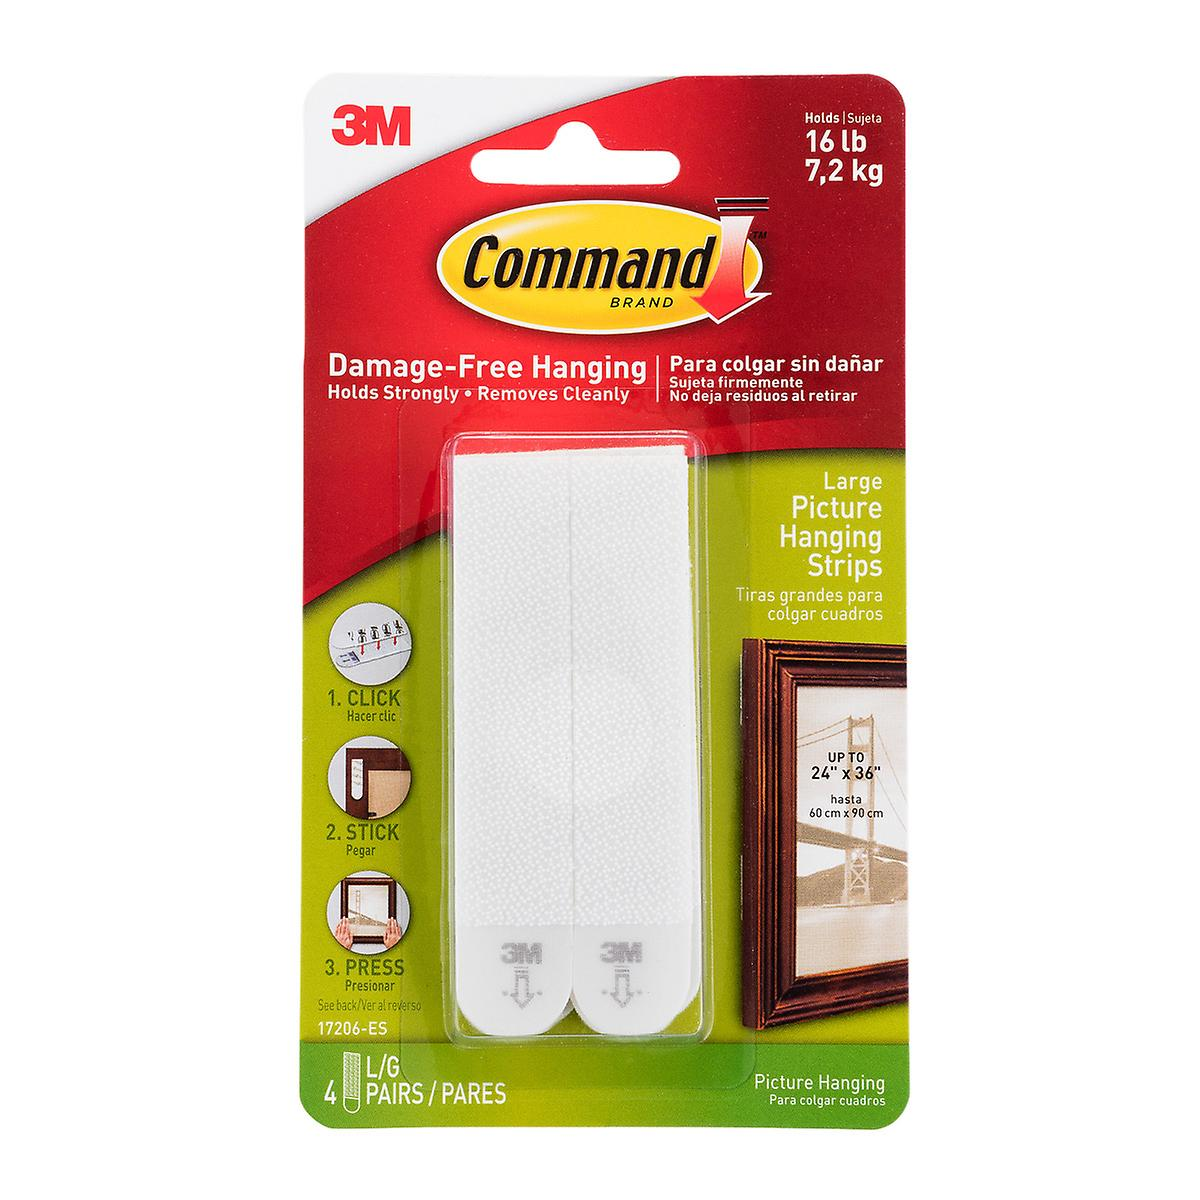 3M Command Adhesive Picture Hanging Strips